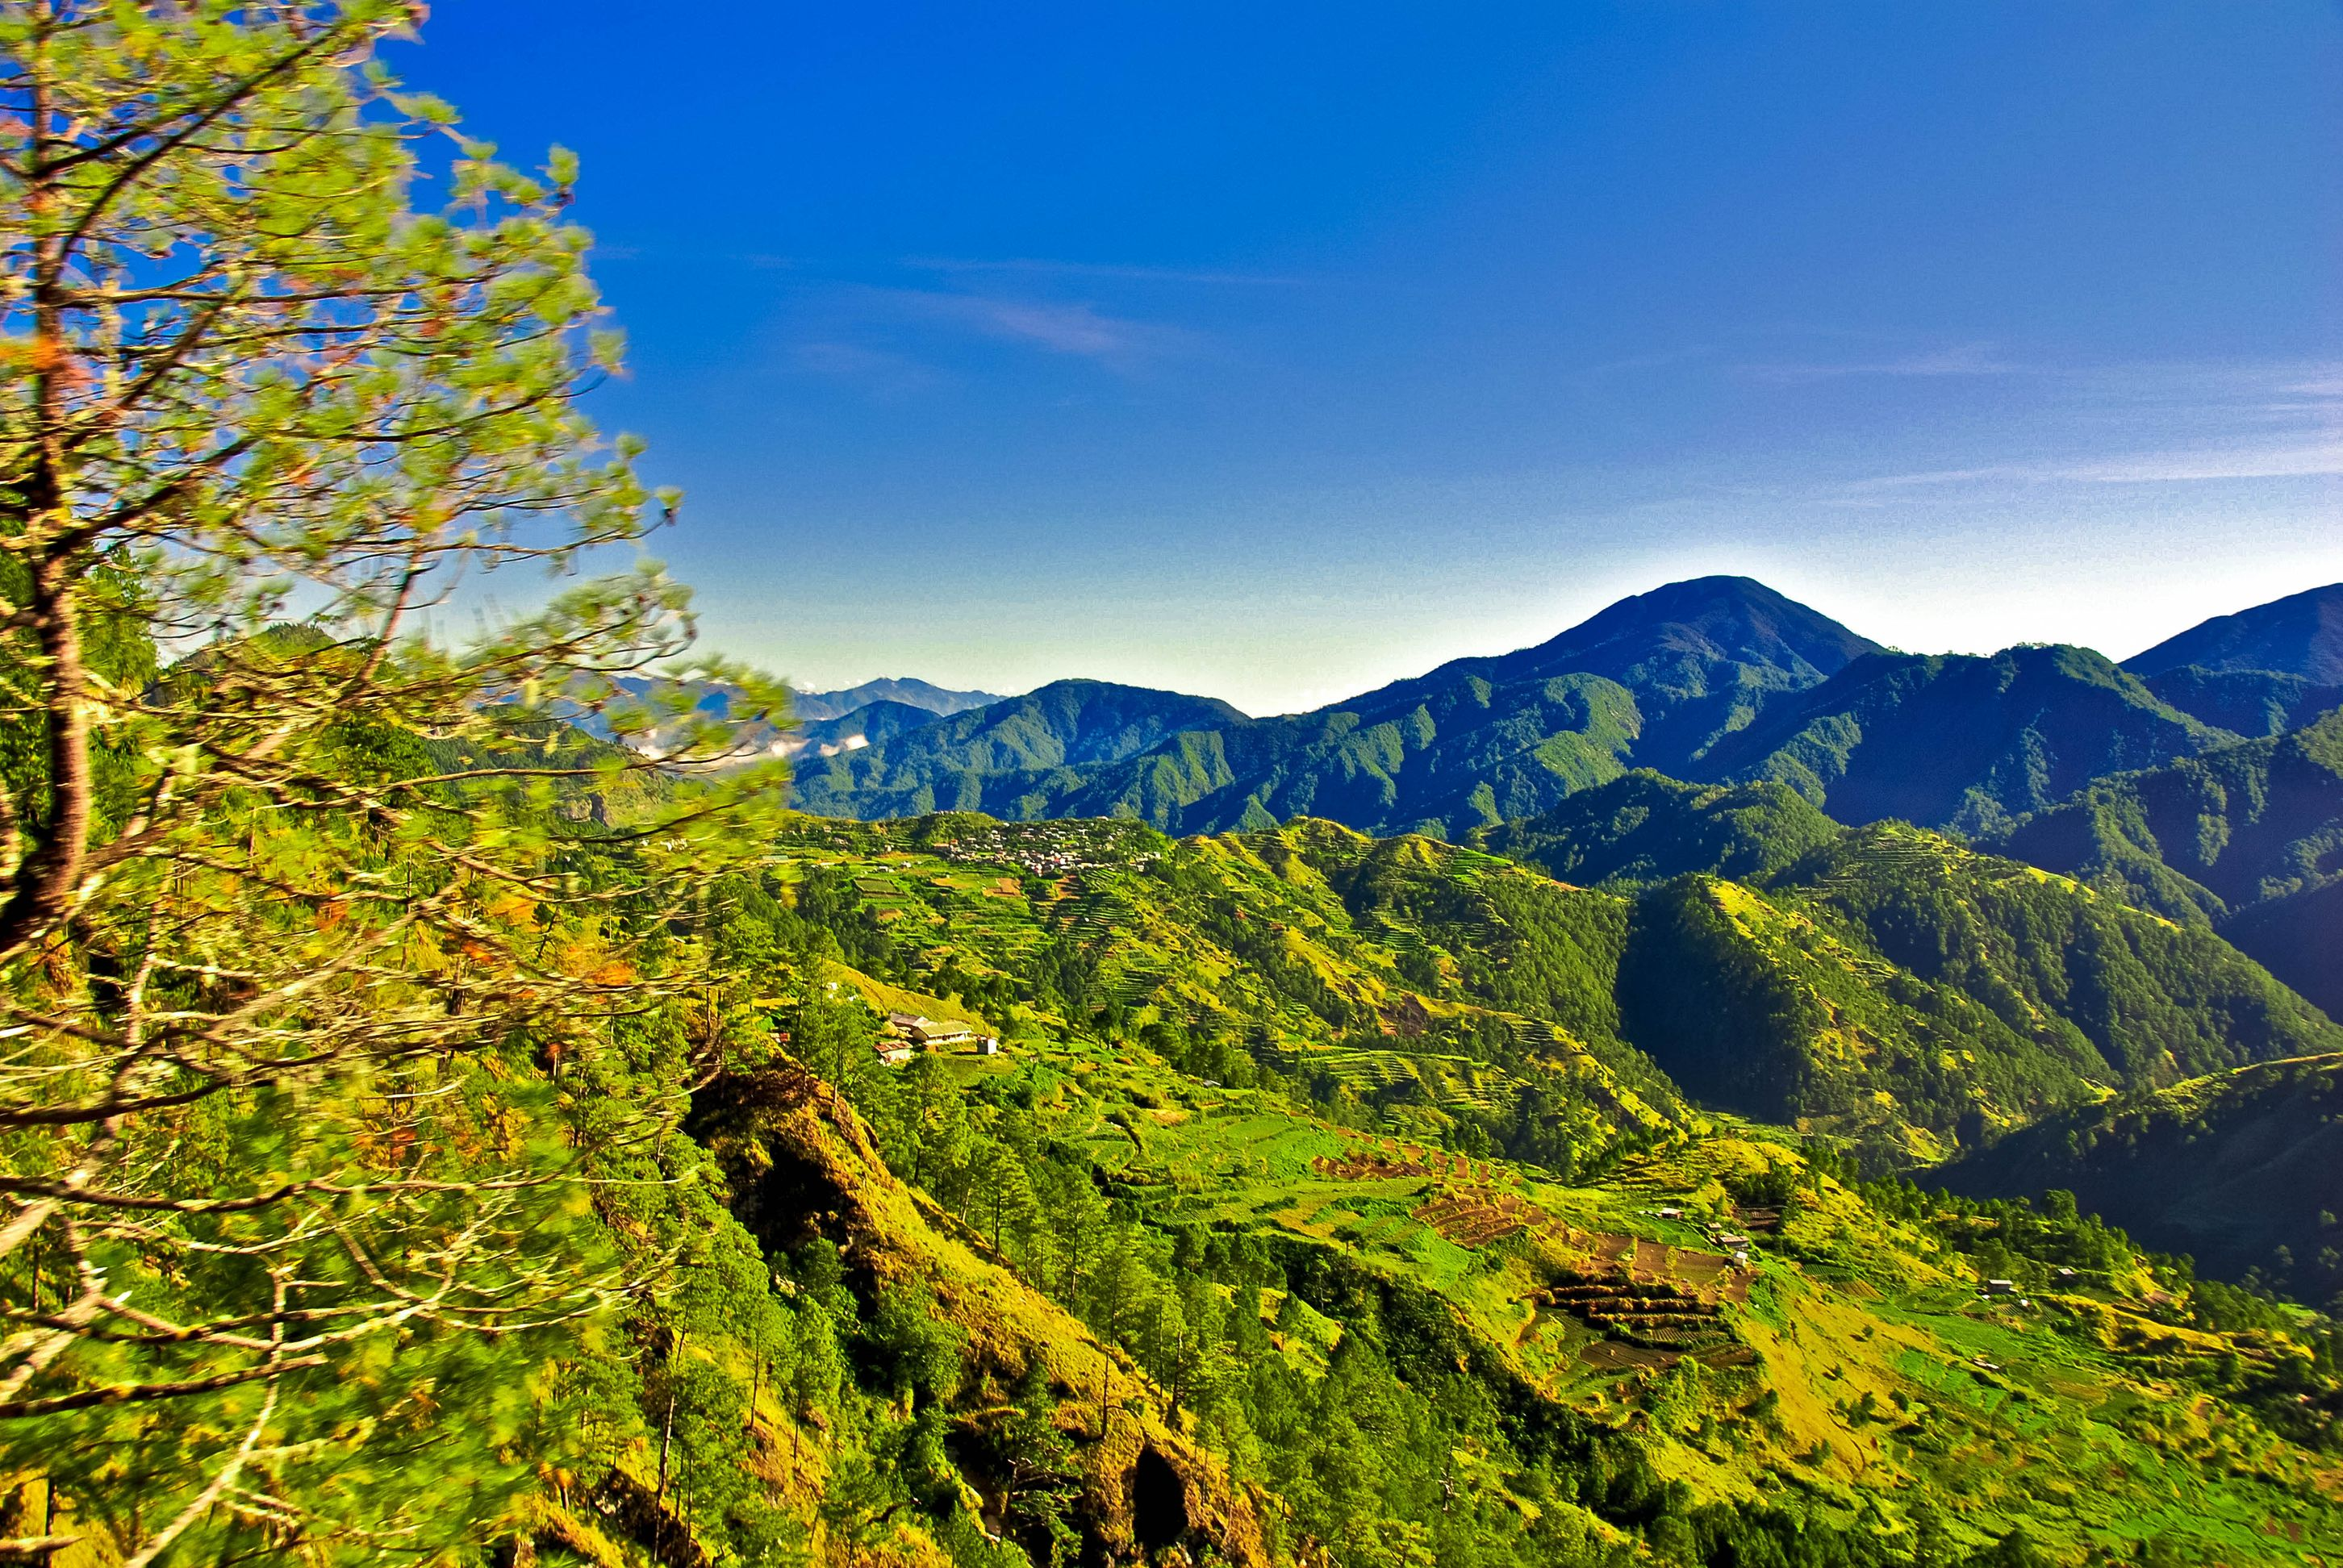 View of the town of Sagada and the Cordillera mountains, among the most amazing places to visit in the Philippines